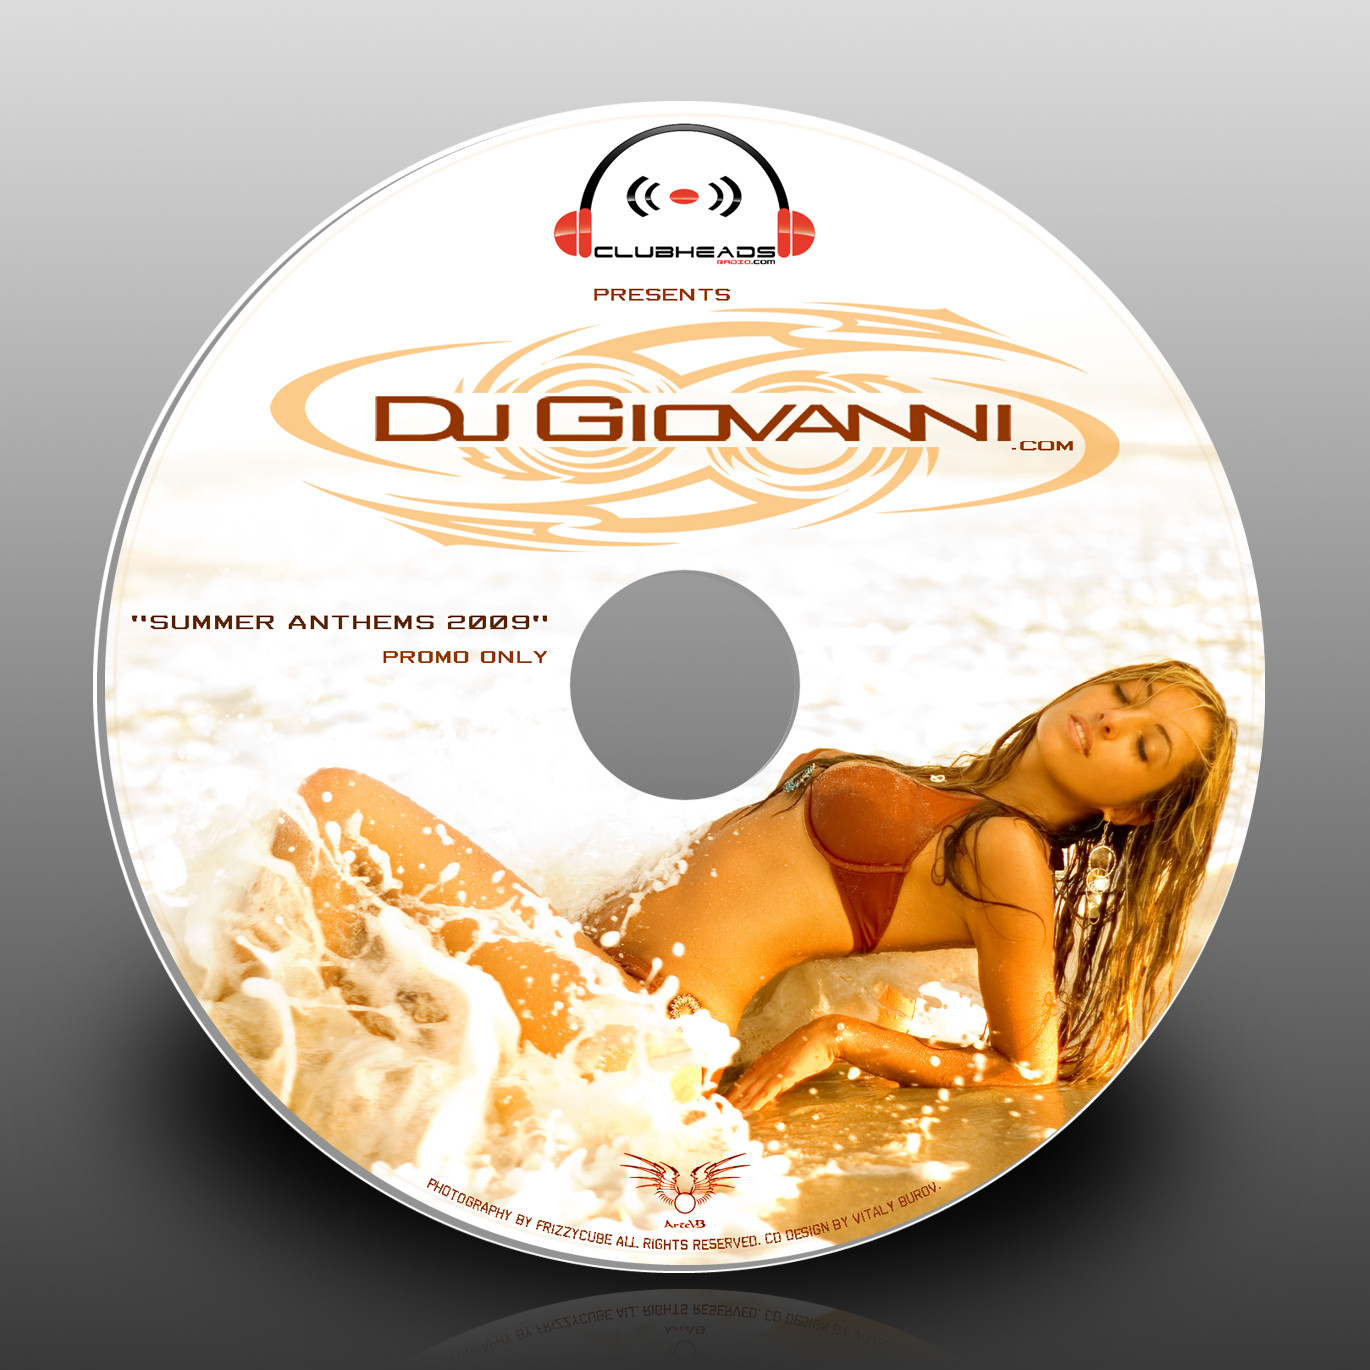 One of the CD Design For Marketing